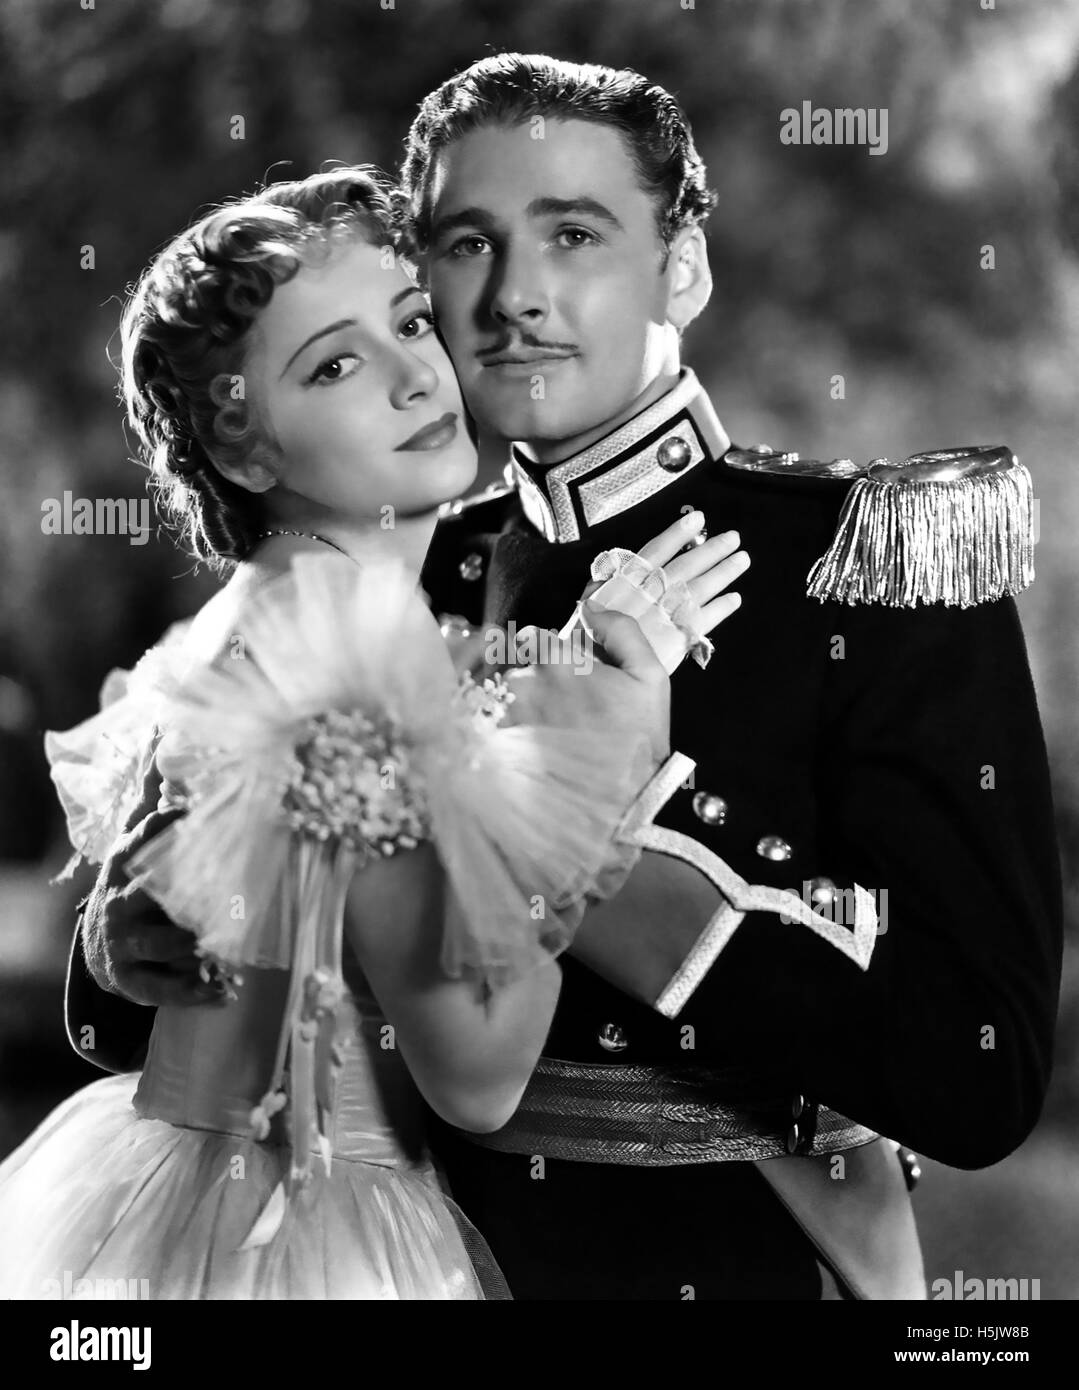 THE CHARGE OF THE LIGHT BRIGADE 1936 Warner Bros film with Errol Flynn and Olliva de Havilland - Stock Image